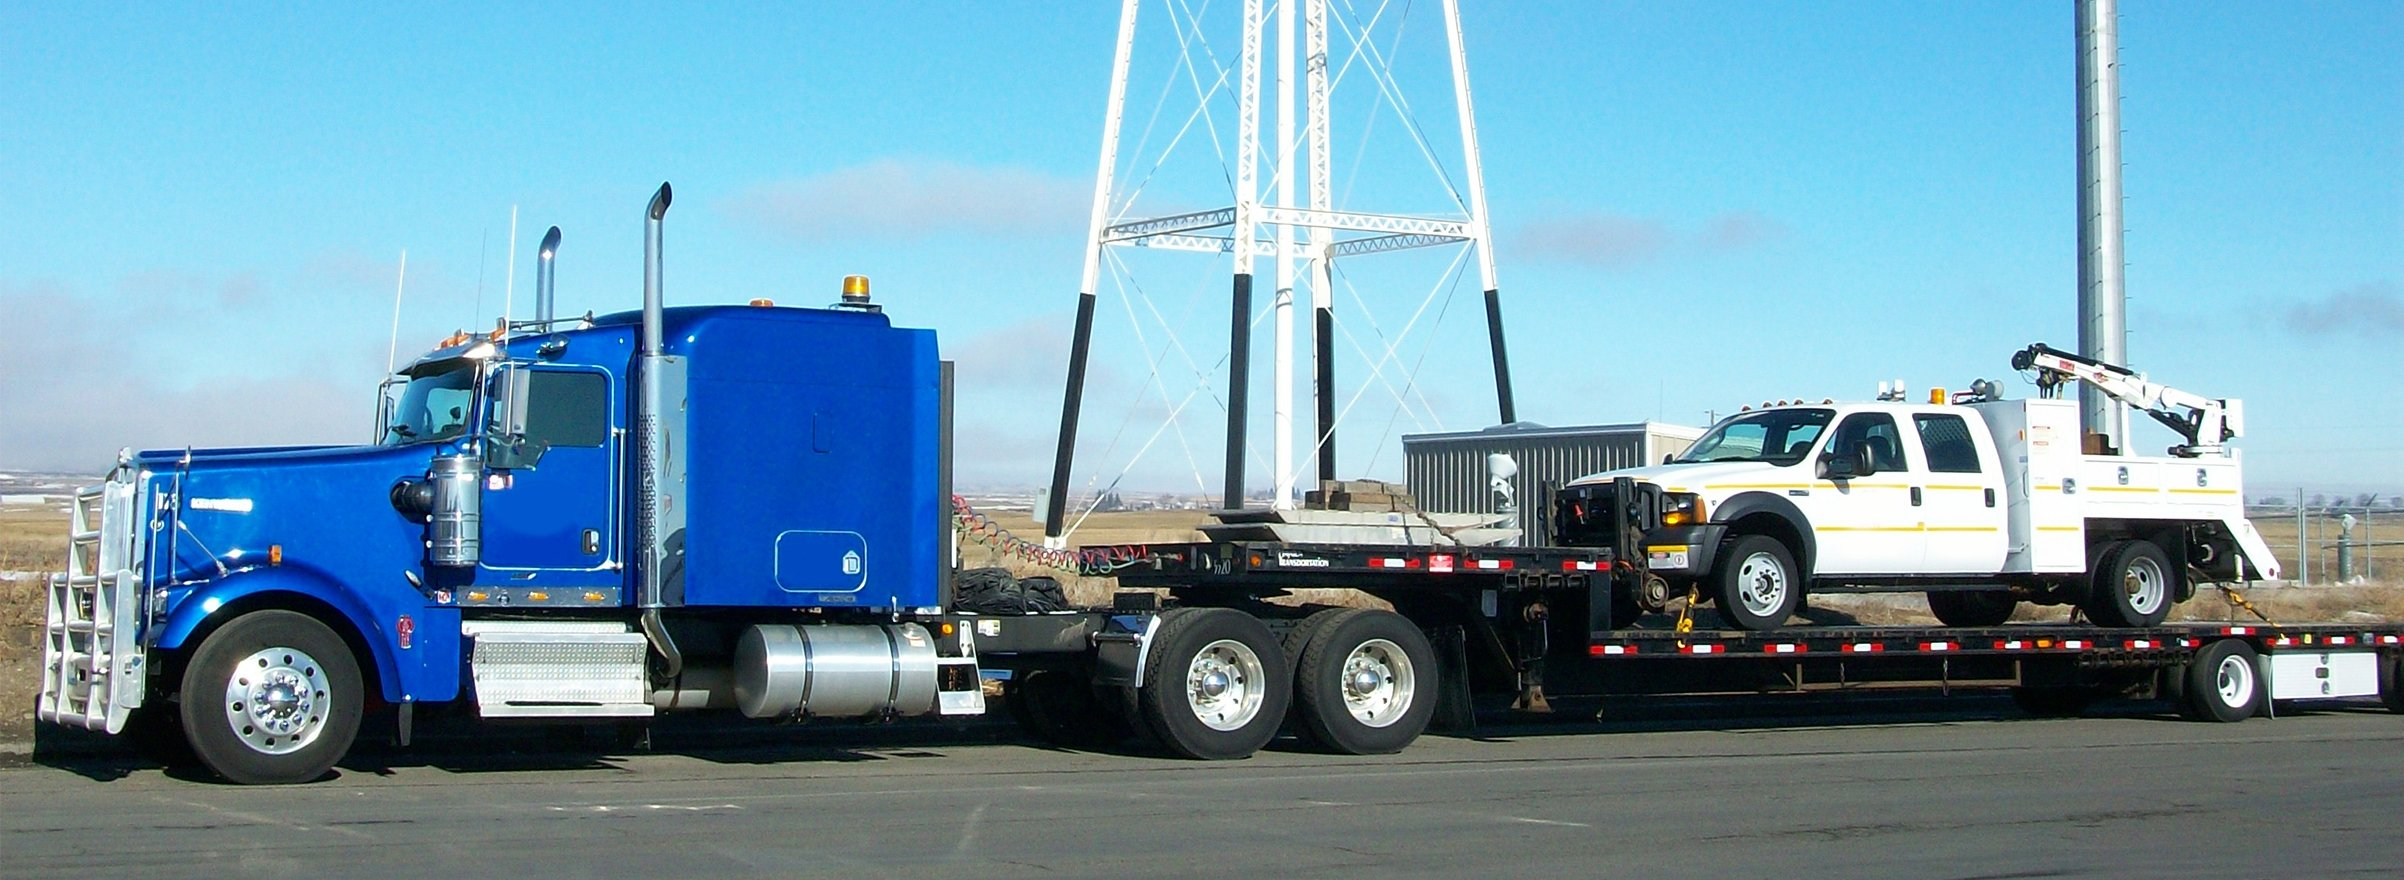 Blue semi with black step deck tailor hauling and electrical truck